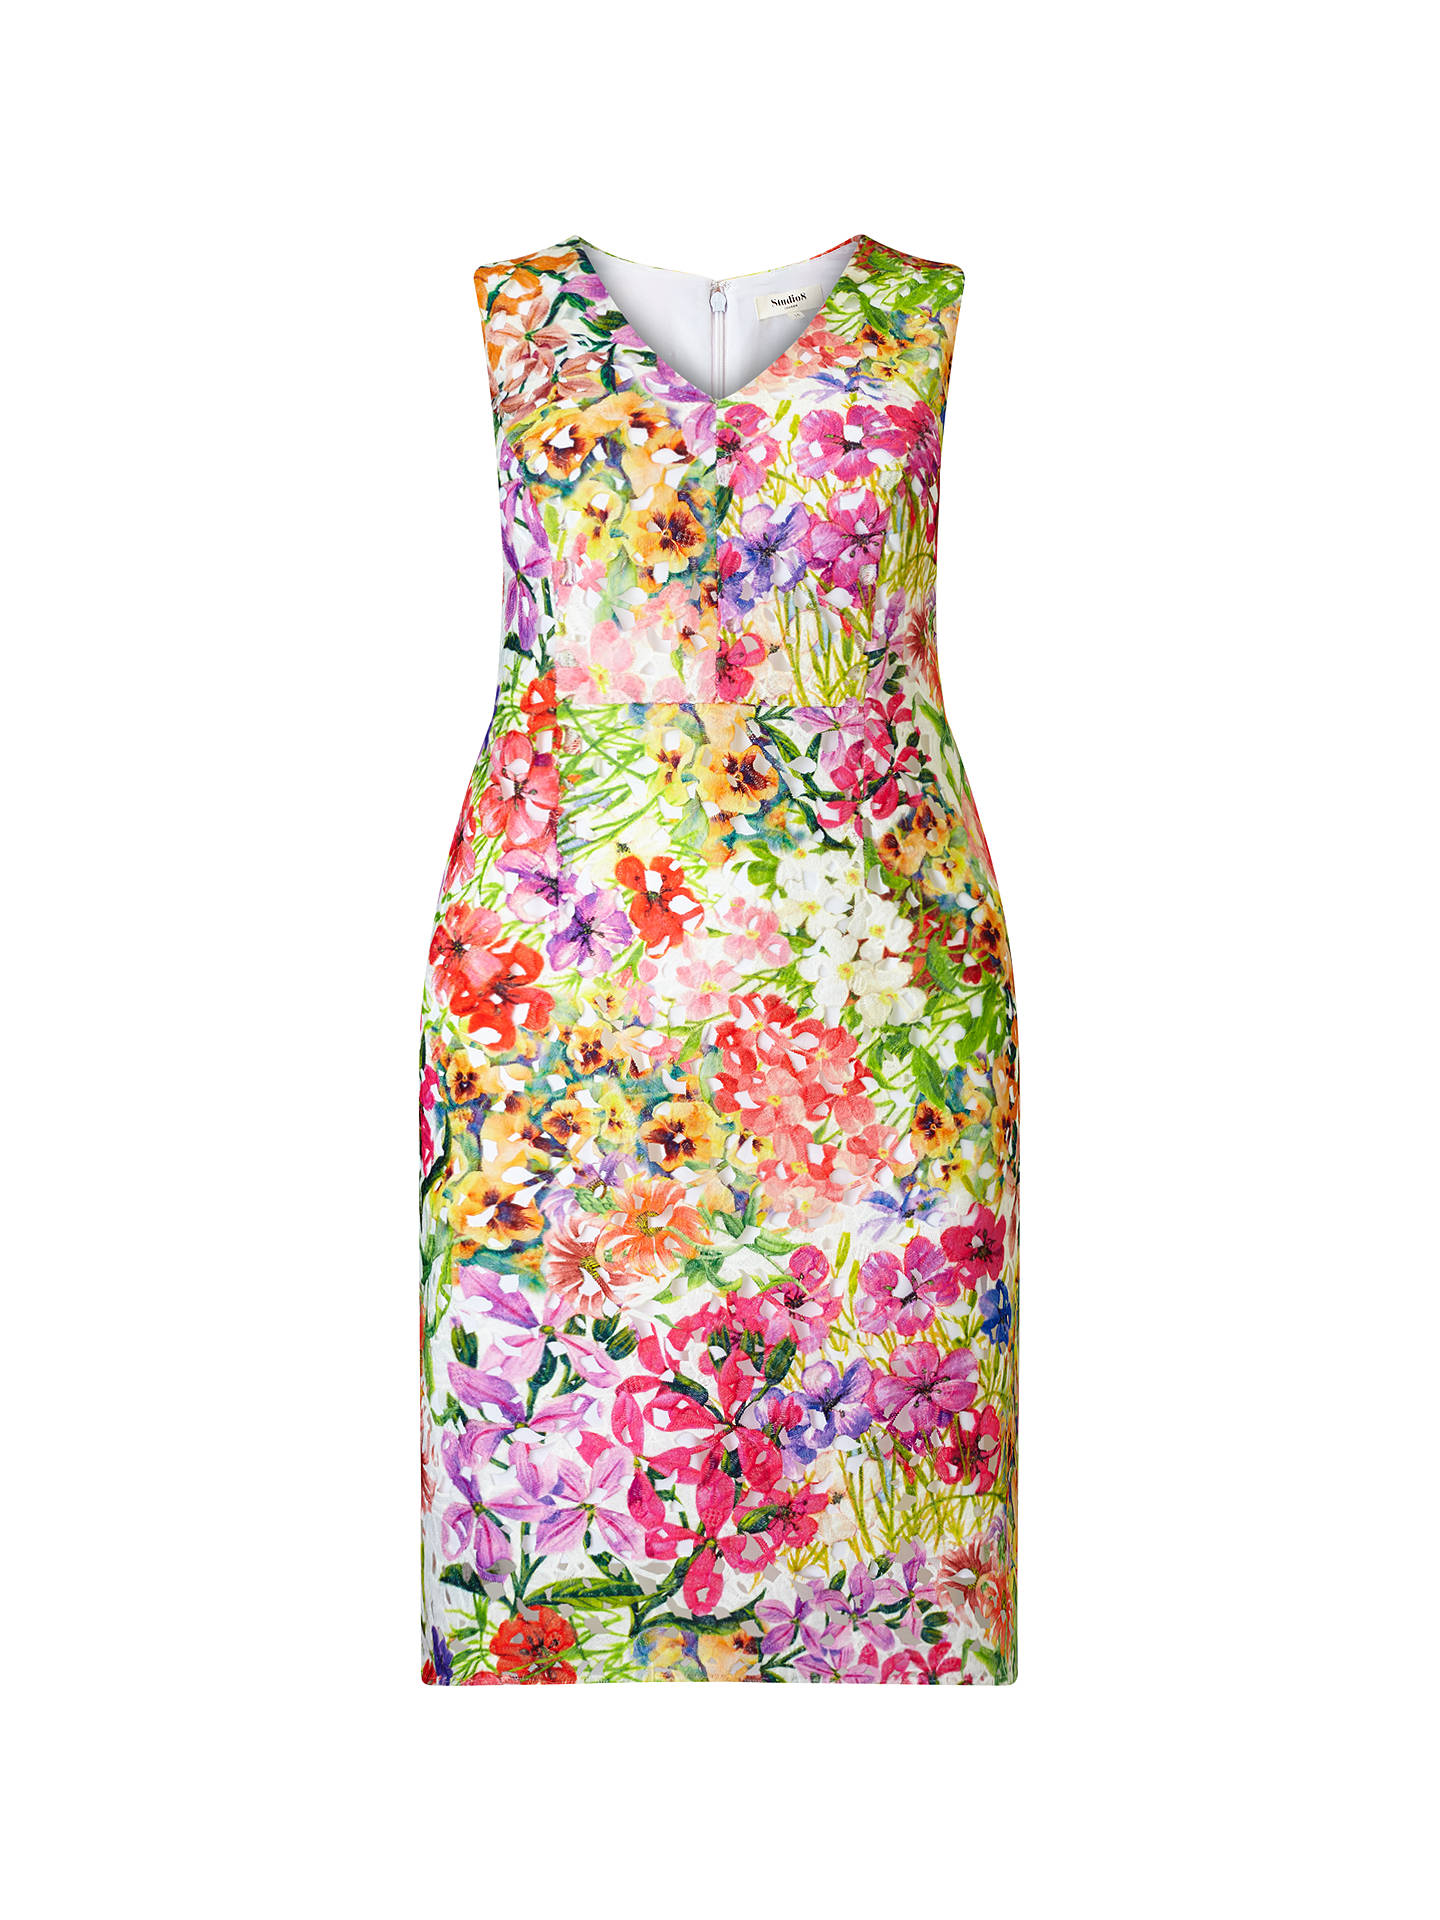 BuyStudio 8 Frieda Dress, Multi, 18 Online at johnlewis.com